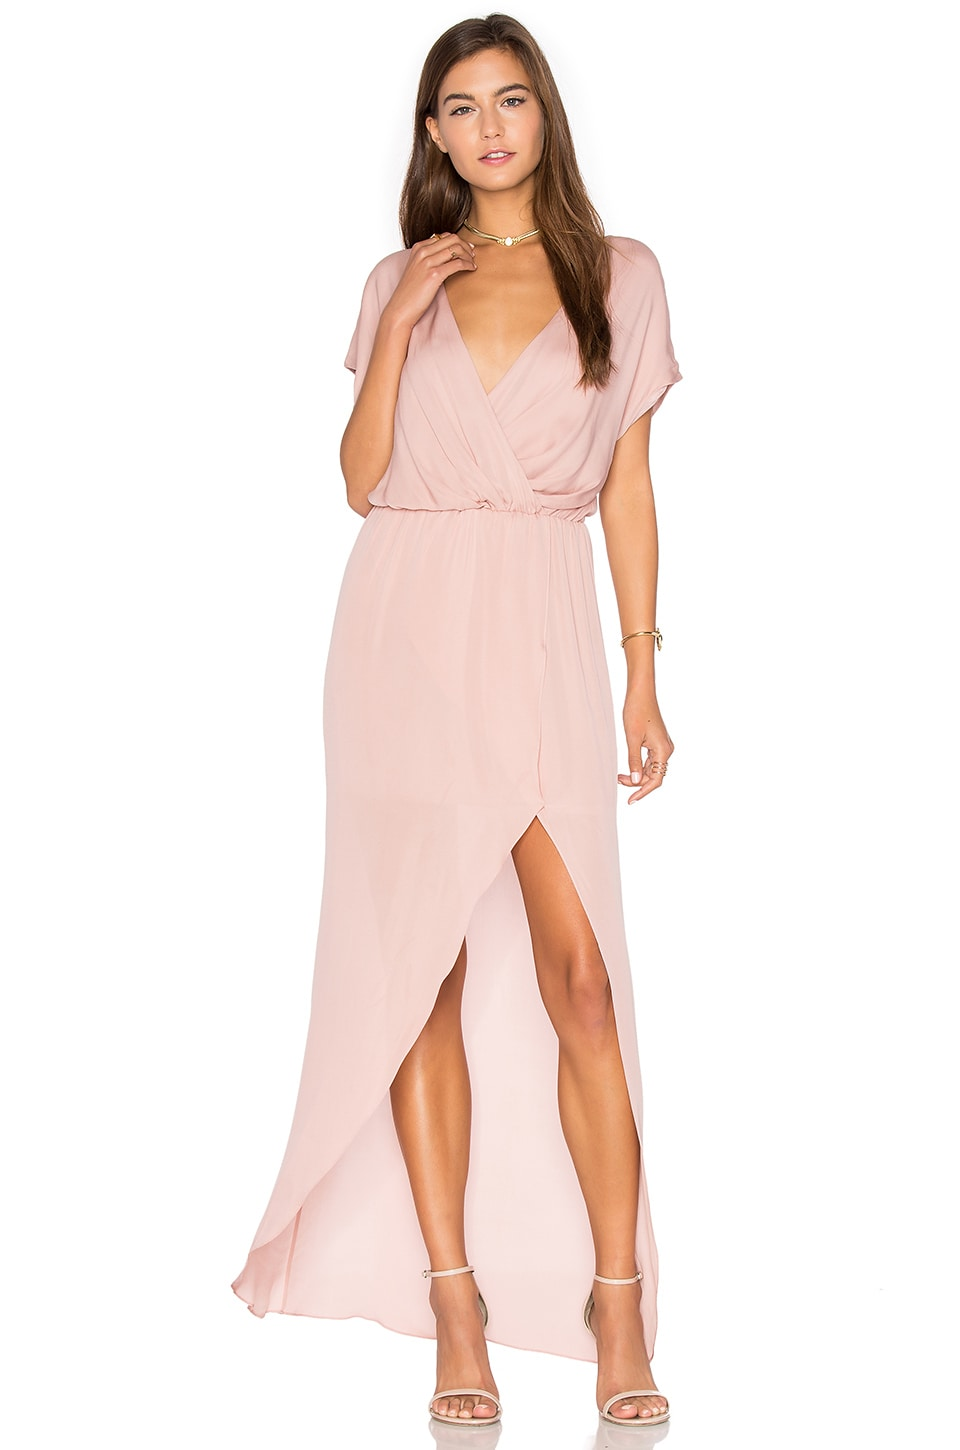 MAID Plaza Gown